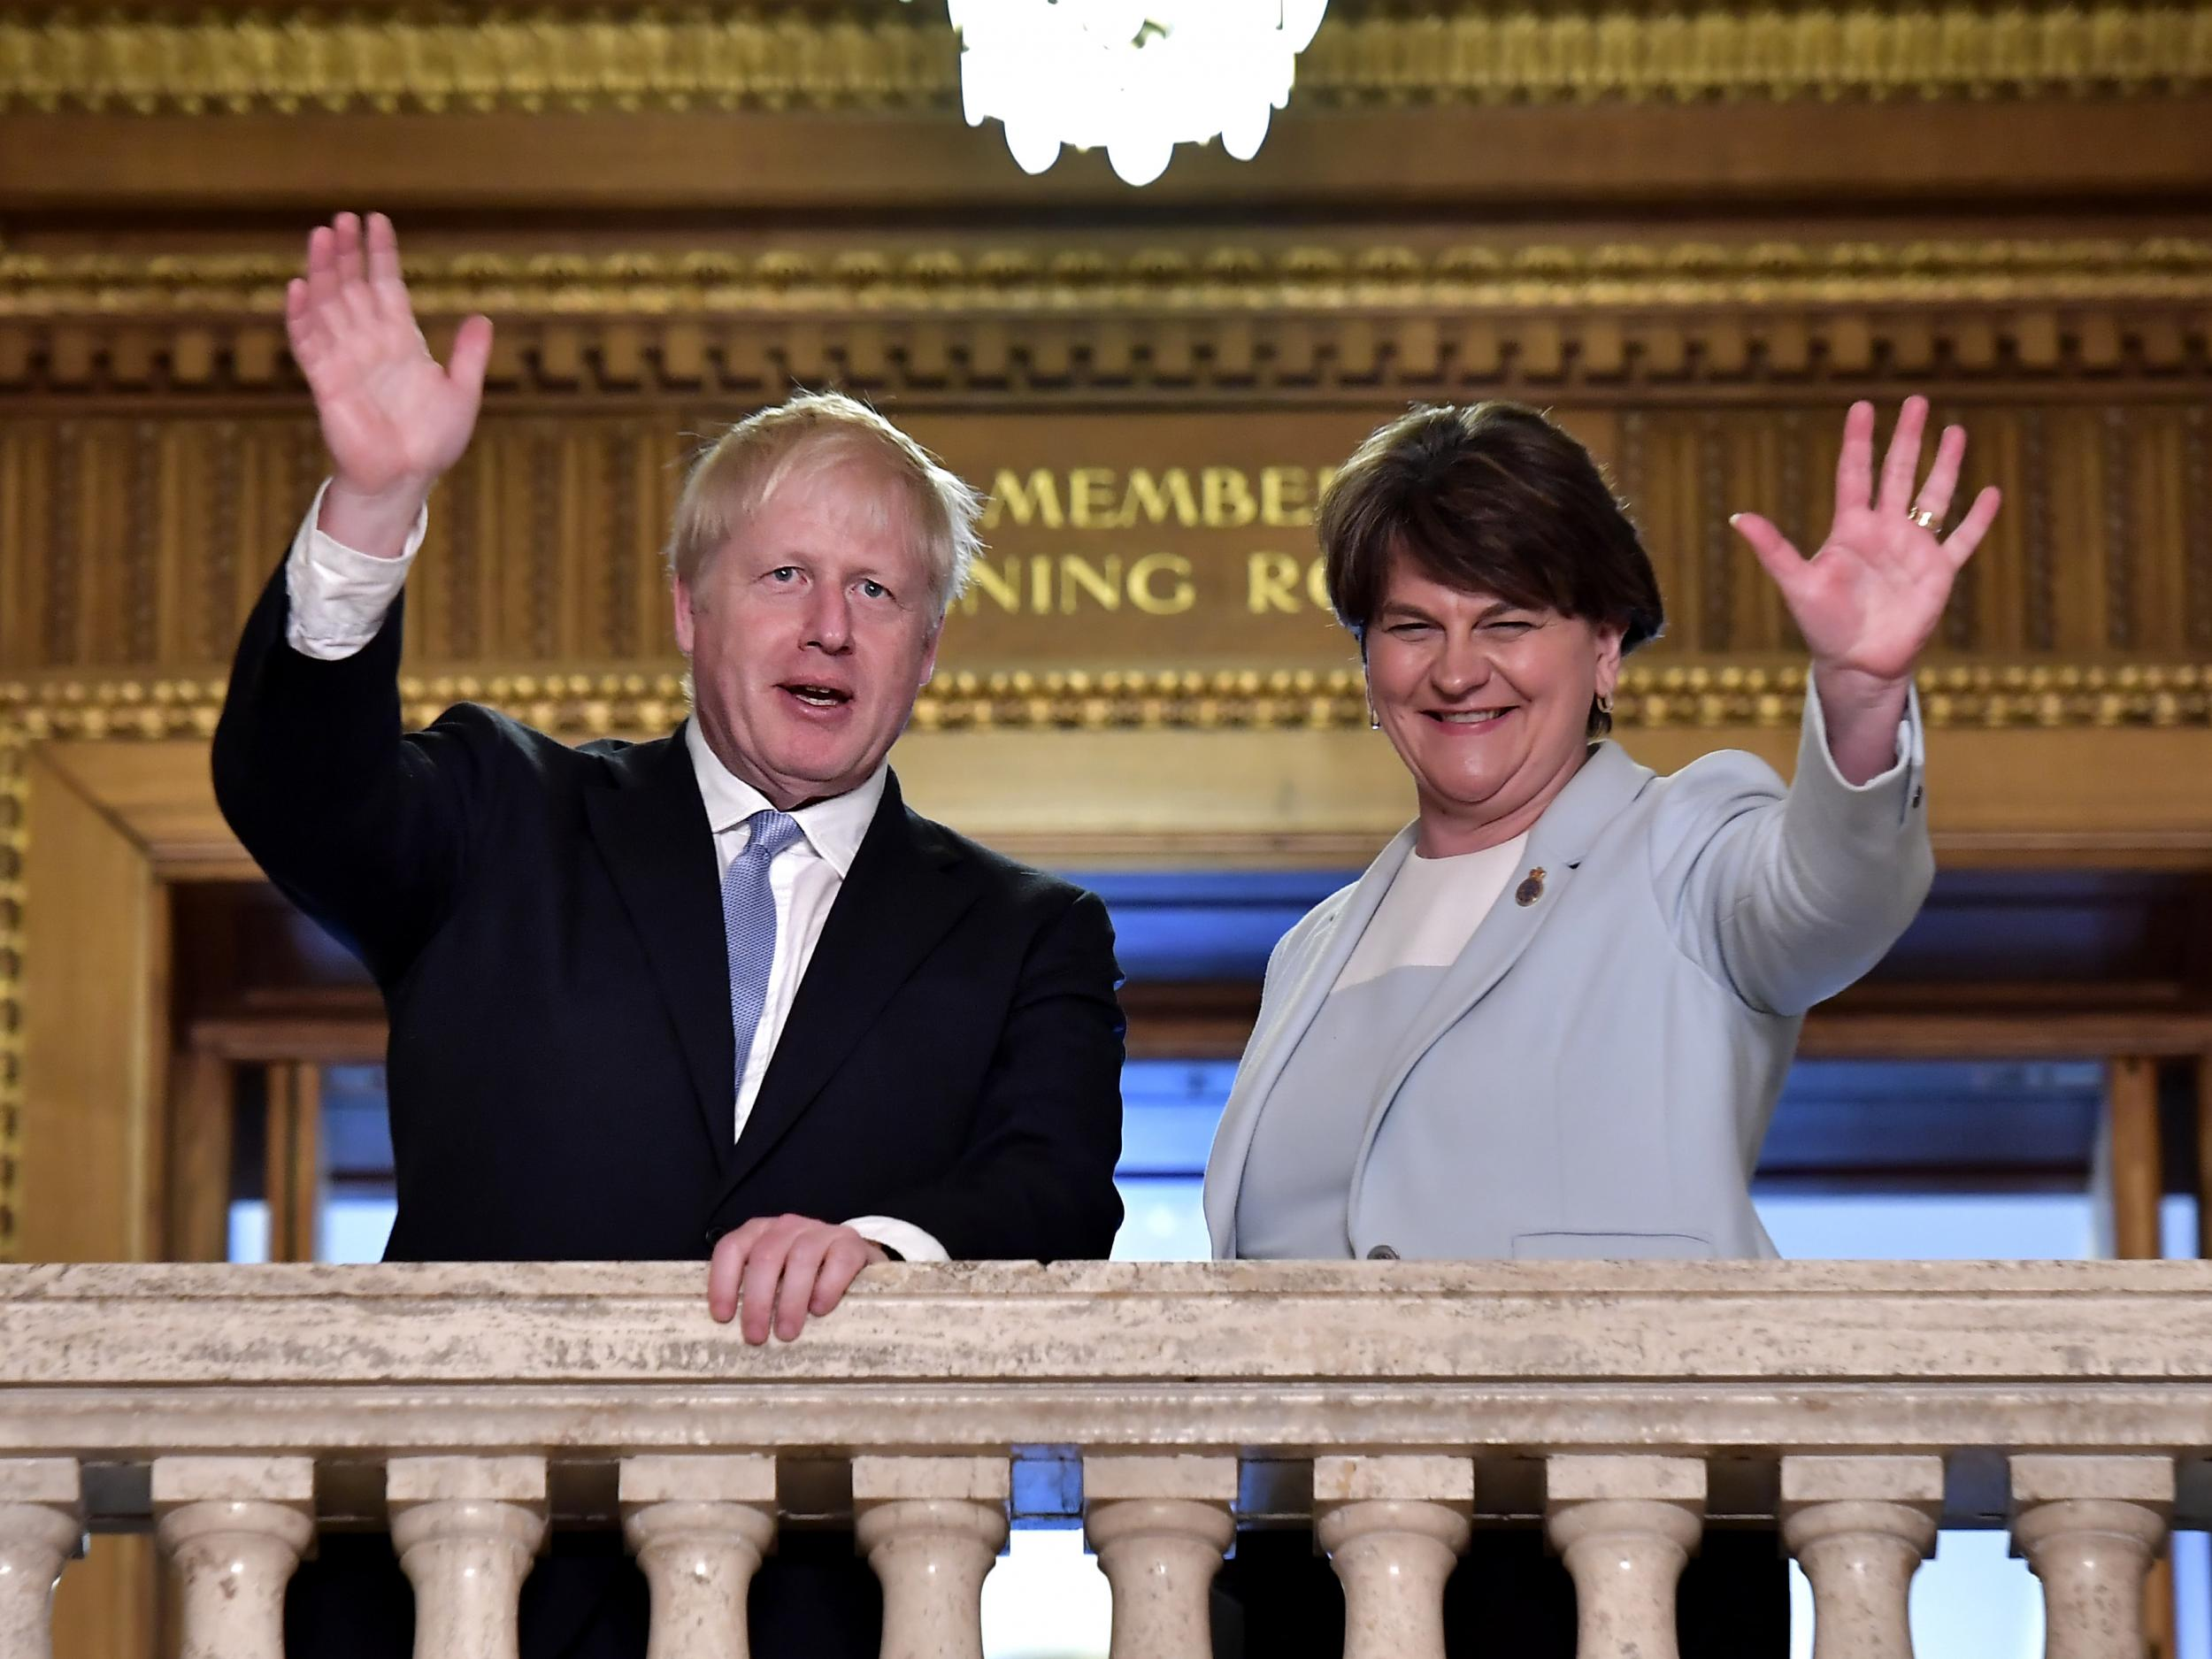 If the DUP holds out, Brexit could be blocked for another decade